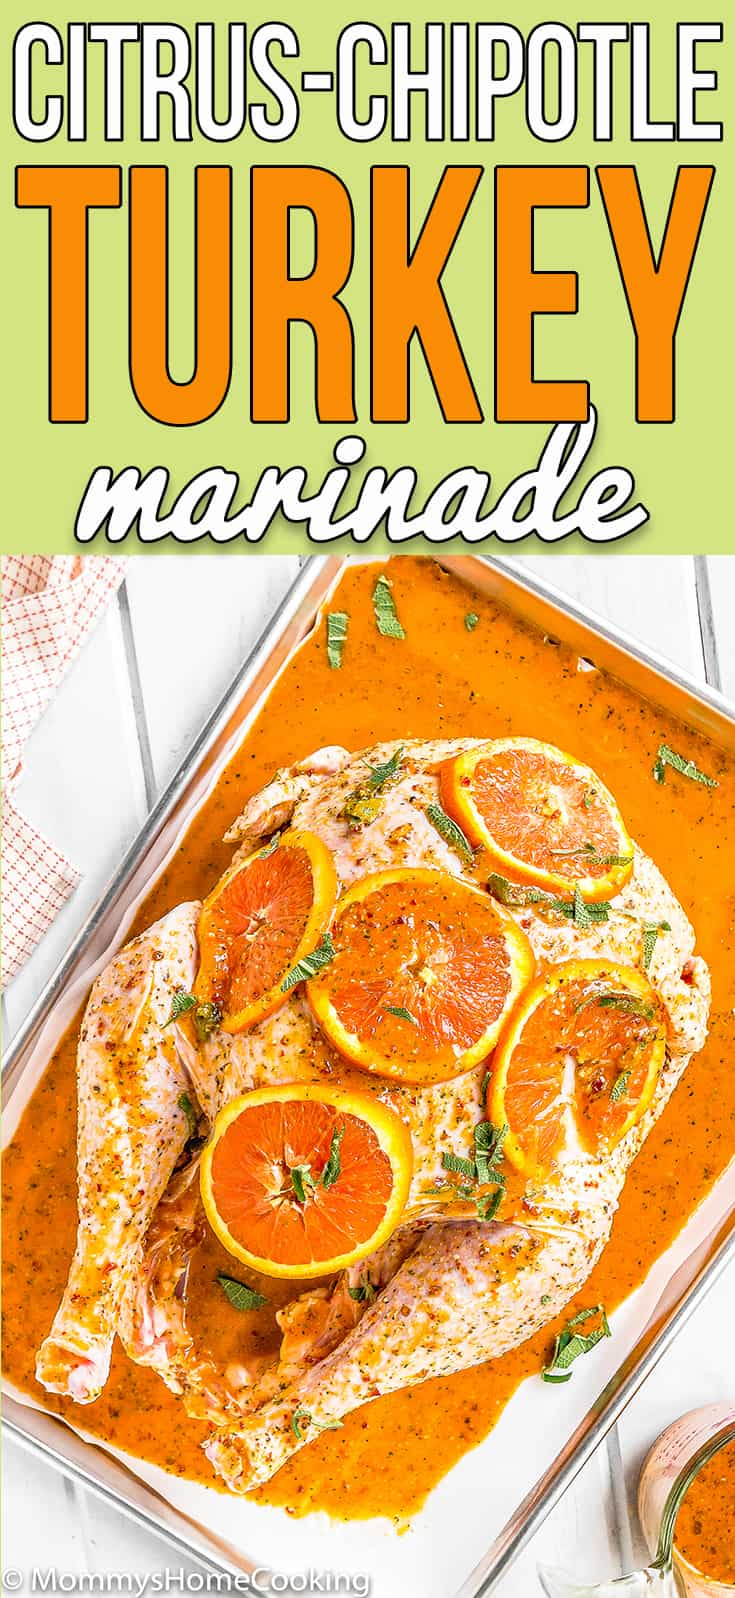 Look no further for the Best Turkey Marinade recipe ever! This BEST Citrus-Chipotle Turkey Marinade not only keeps your turkey moist but incredibly flavorful. Simple to prepare, and totally delicious. #recipe #turkey #marinade #thanksgiving